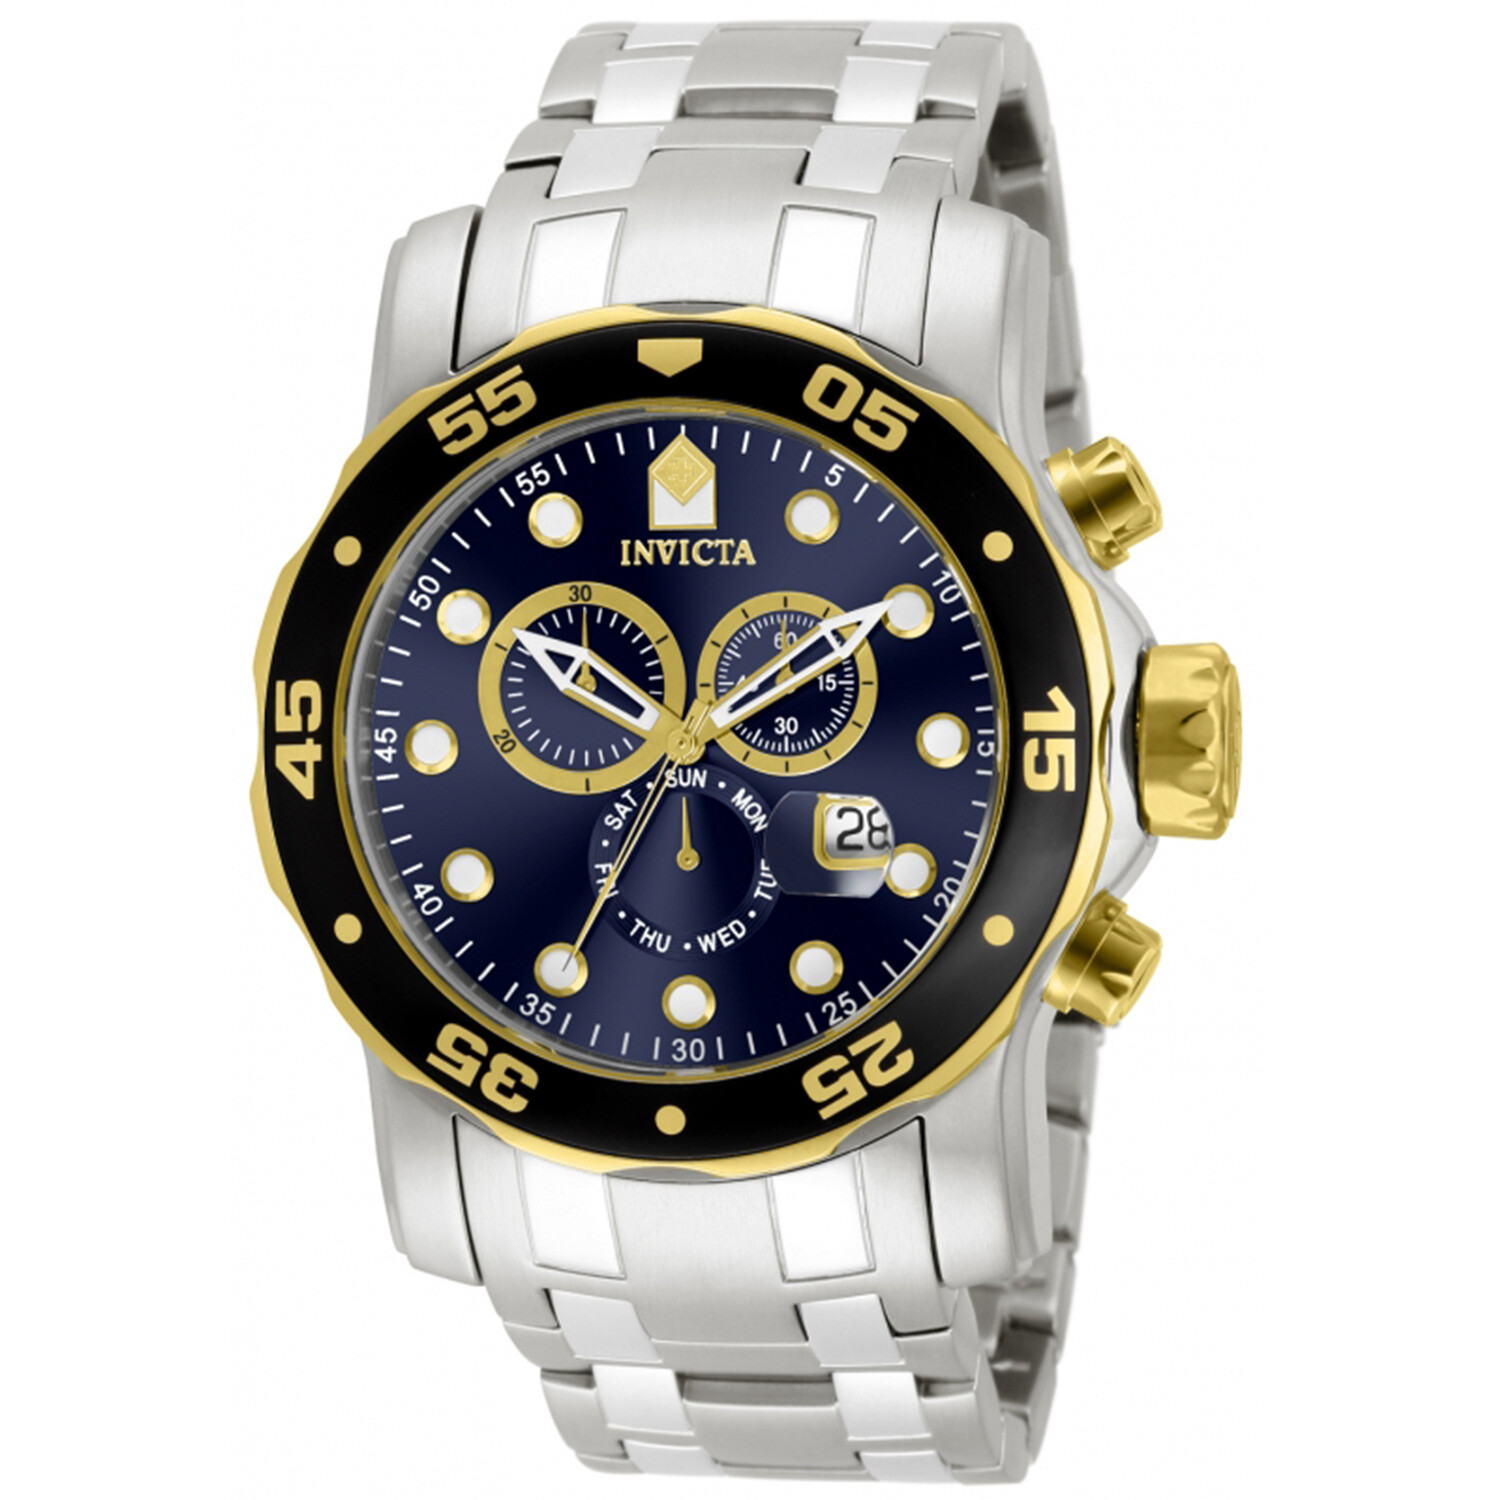 Invicta Men's Speciality 80041 Silver Stainless-Steel Plated Swiss Parts Chronograph Dress Watch